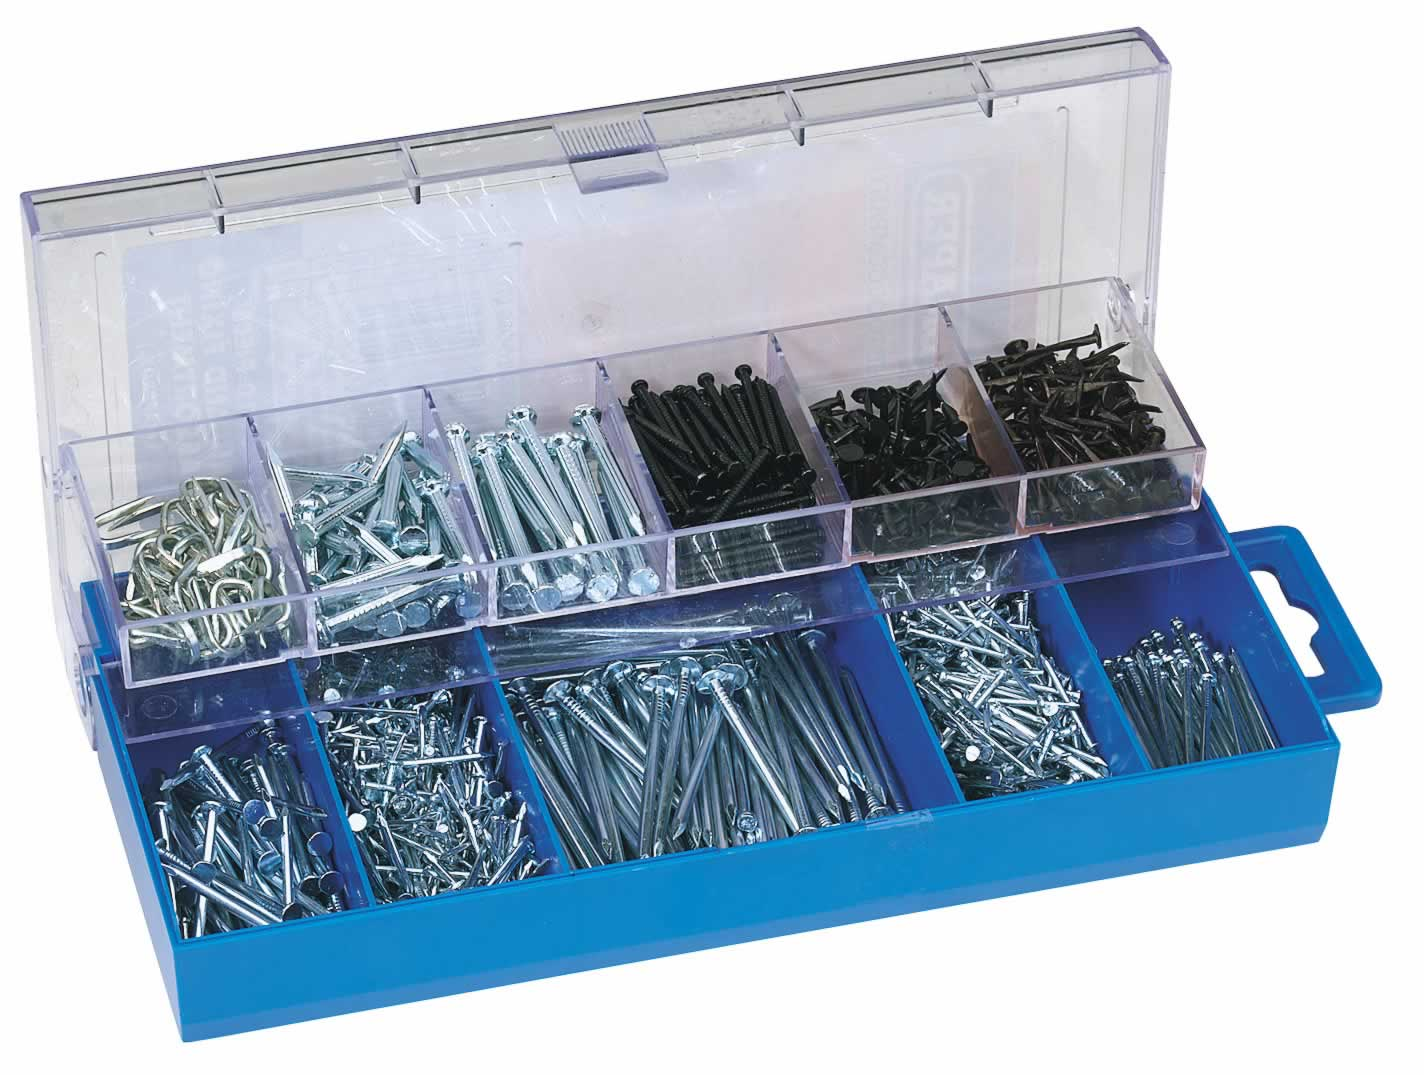 Nail and Fixing Assortment (1110 Piece)   (AHA)